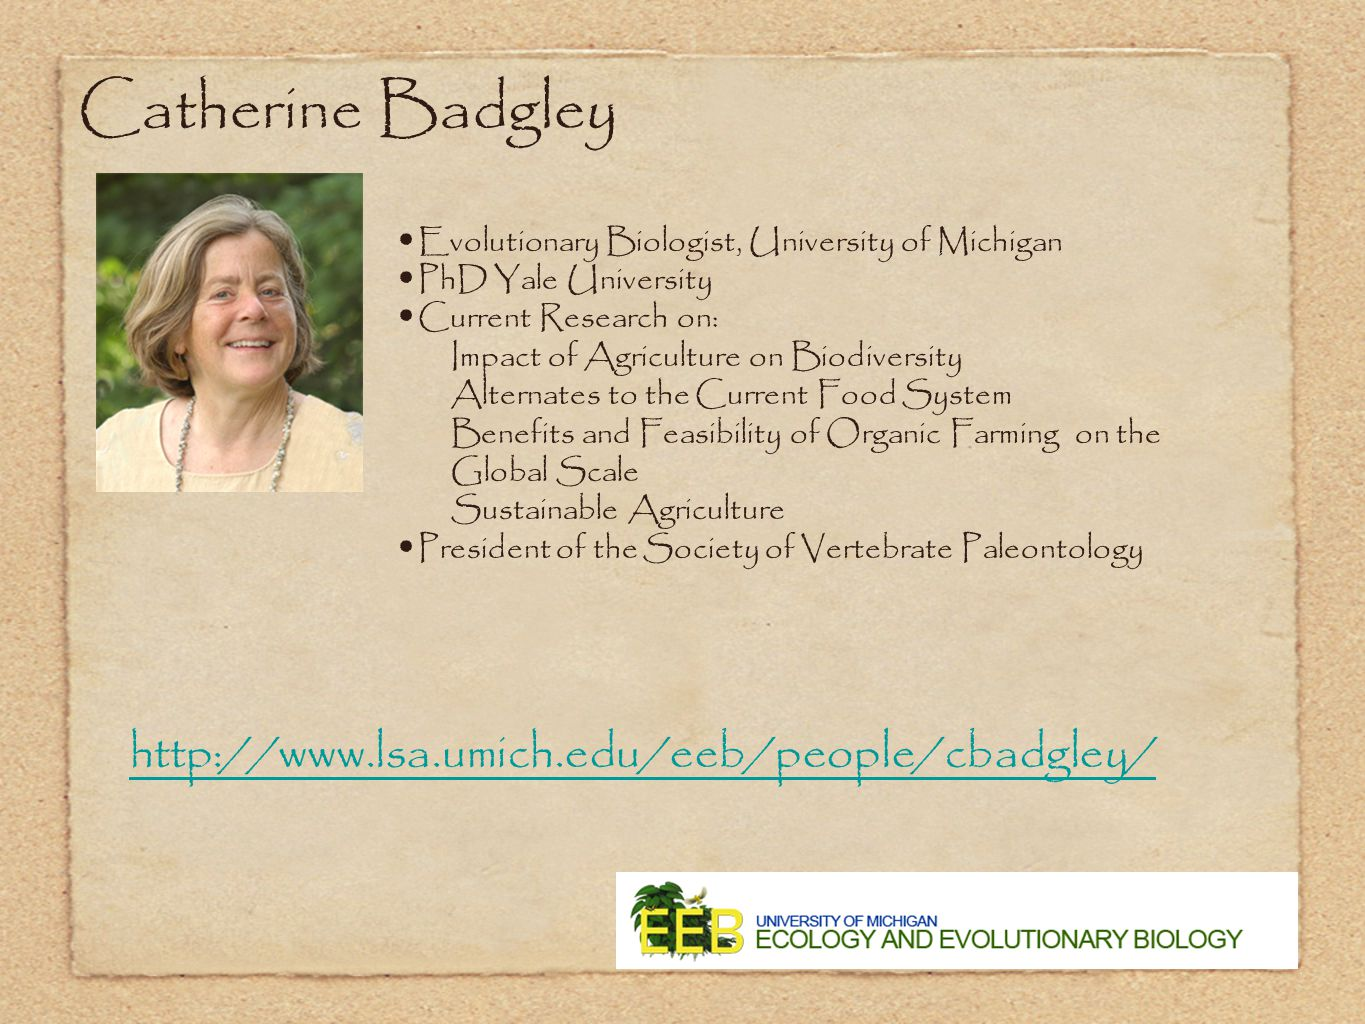 Catherine Badgley Evolutionary Biologist, University of Michigan PhD Yale University Current Research on: Impact of Agriculture on Biodiversity Alternates to the Current Food System Benefits and Feasibility of Organic Farming on the Global Scale Sustainable Agriculture President of the Society of Vertebrate Paleontology http://www.lsa.umich.edu/eeb/people/cbadgley/